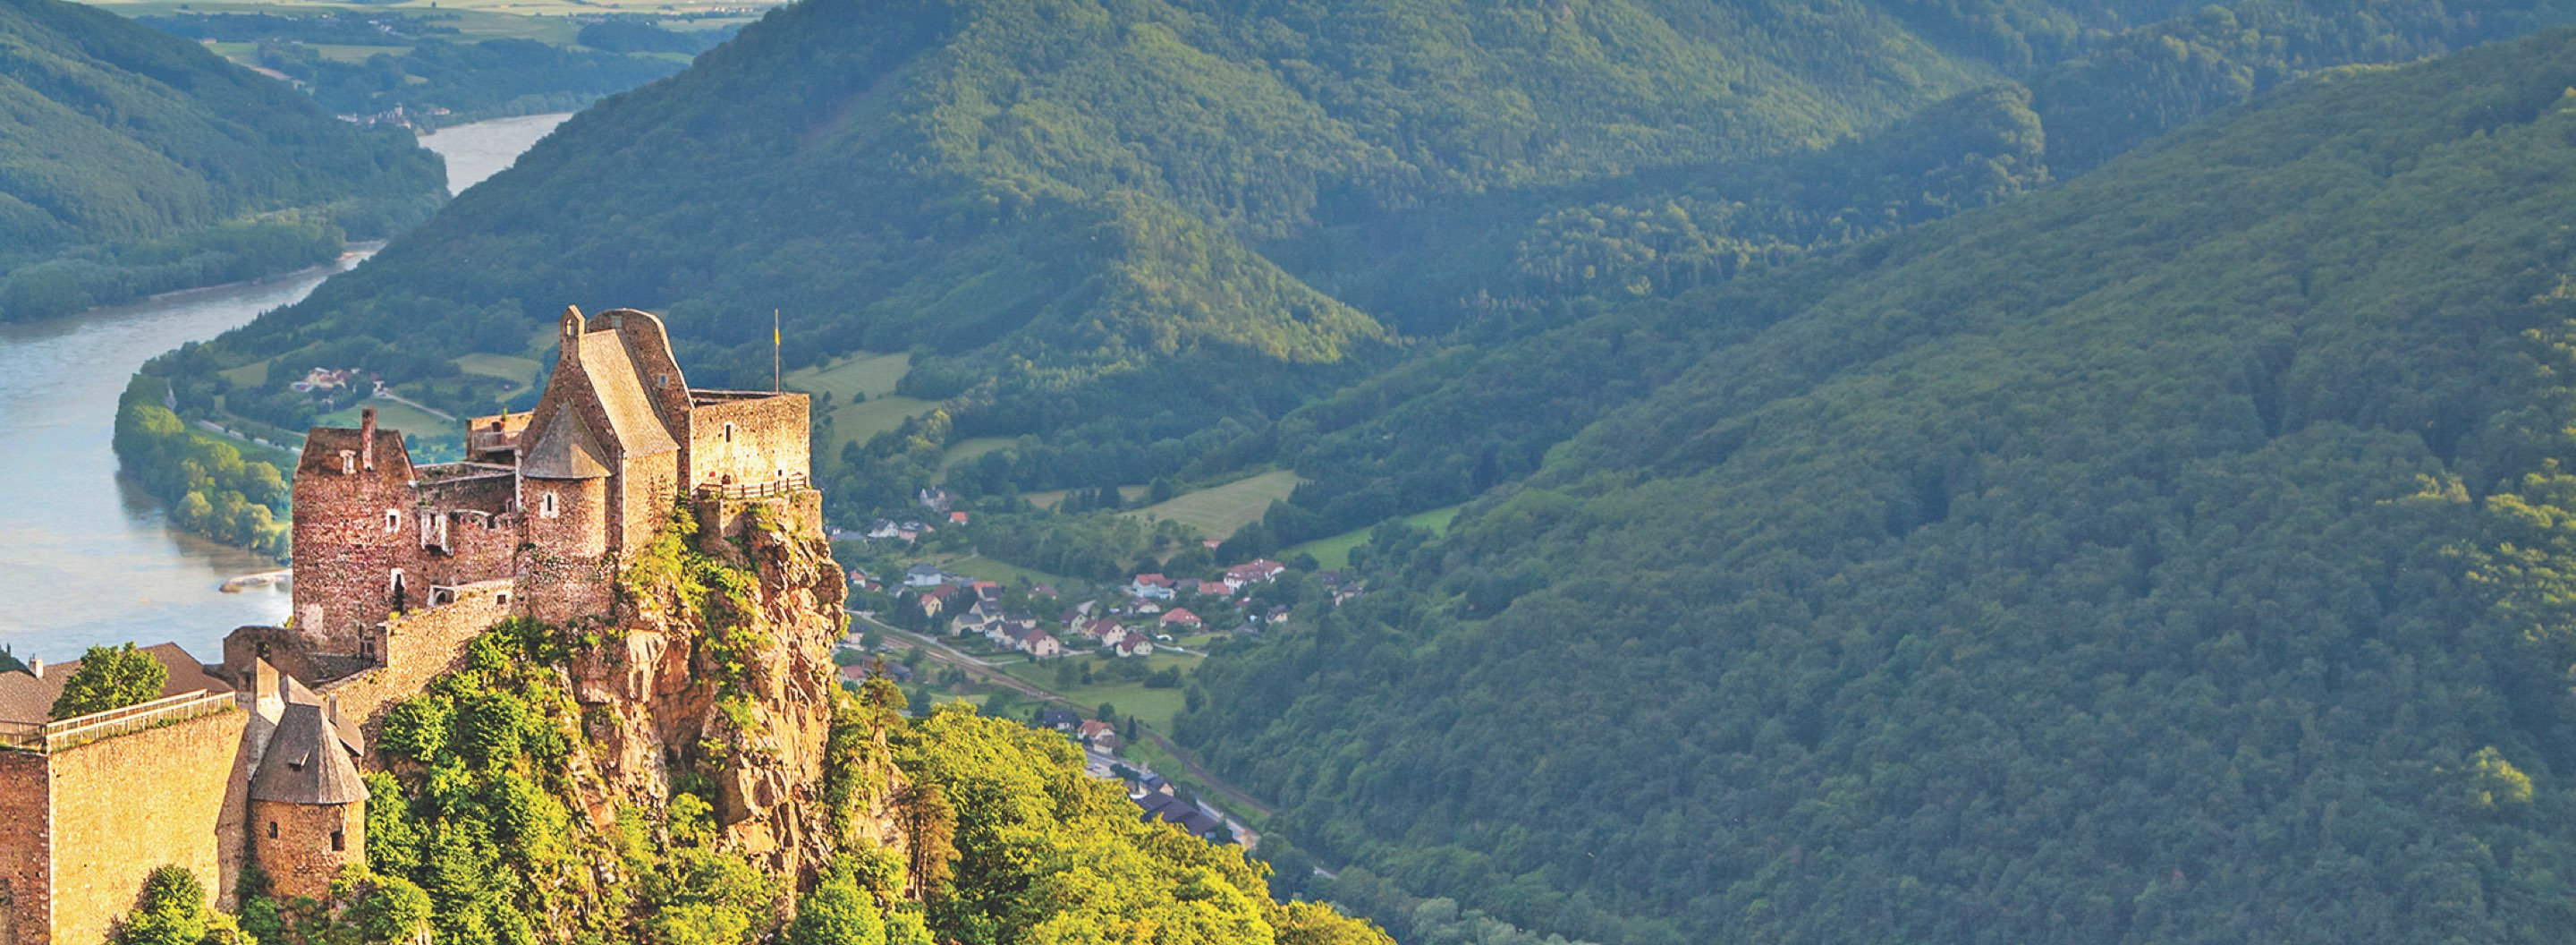 Image of a European castle perched on a grand mountainside.